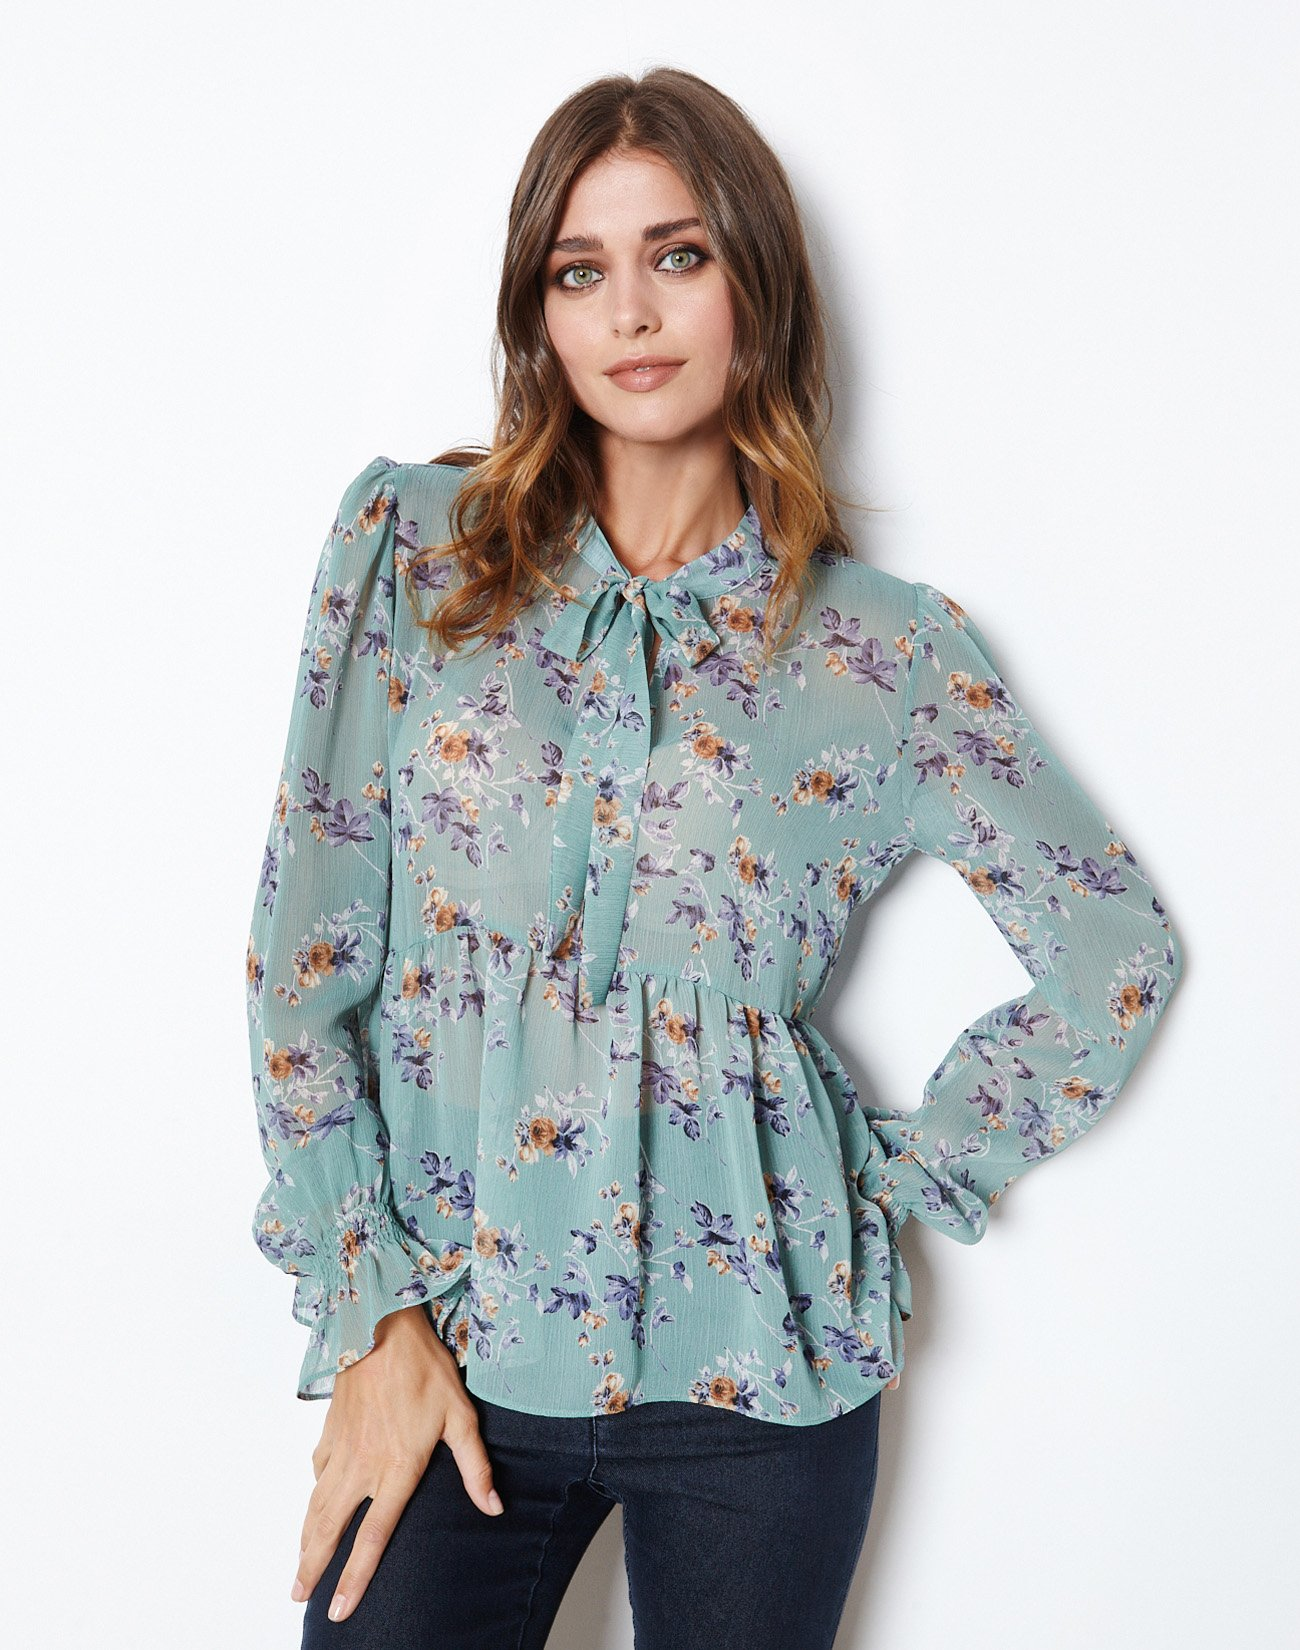 Printed top with tie